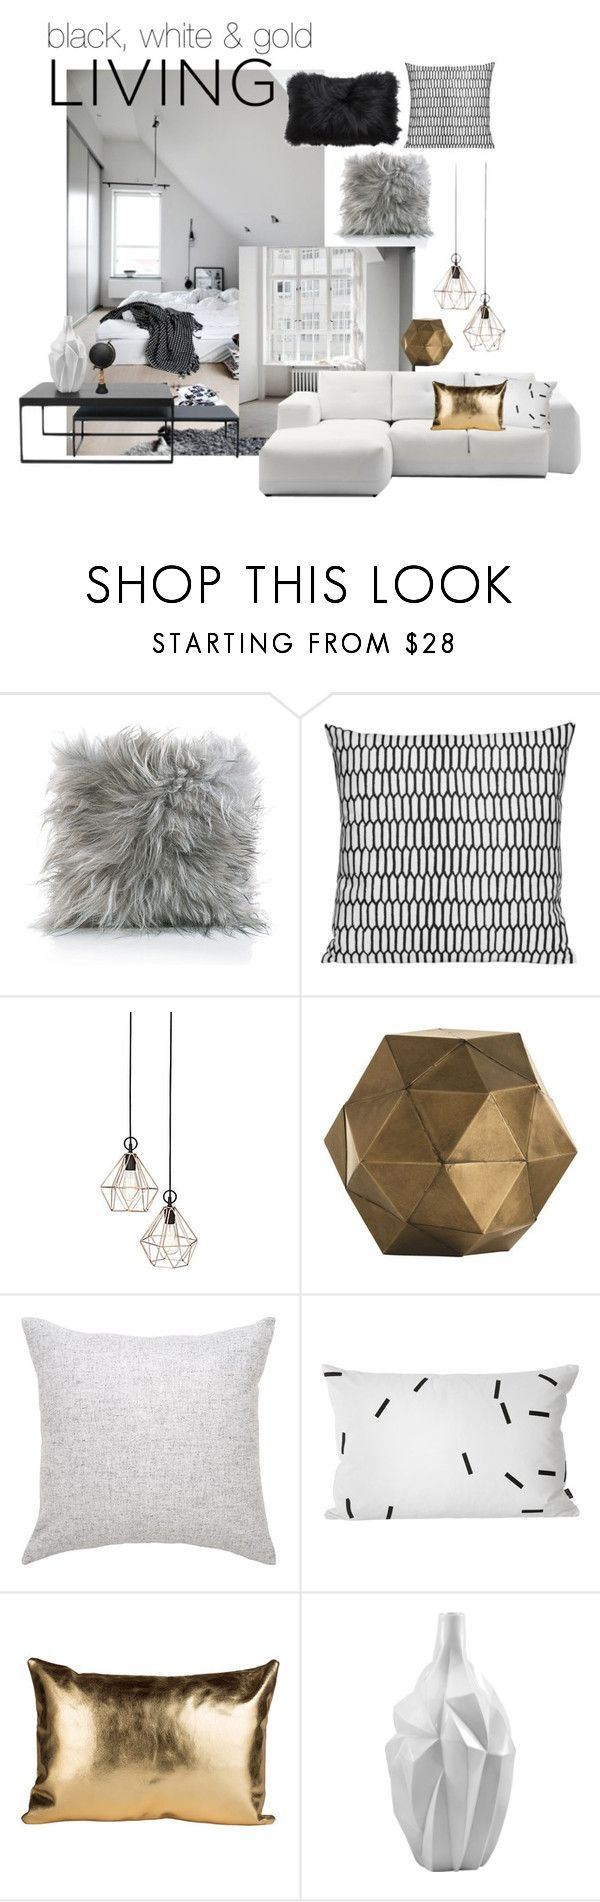 20 Decorating Tricks for Your Bedroom | Black white gold, Interior ...